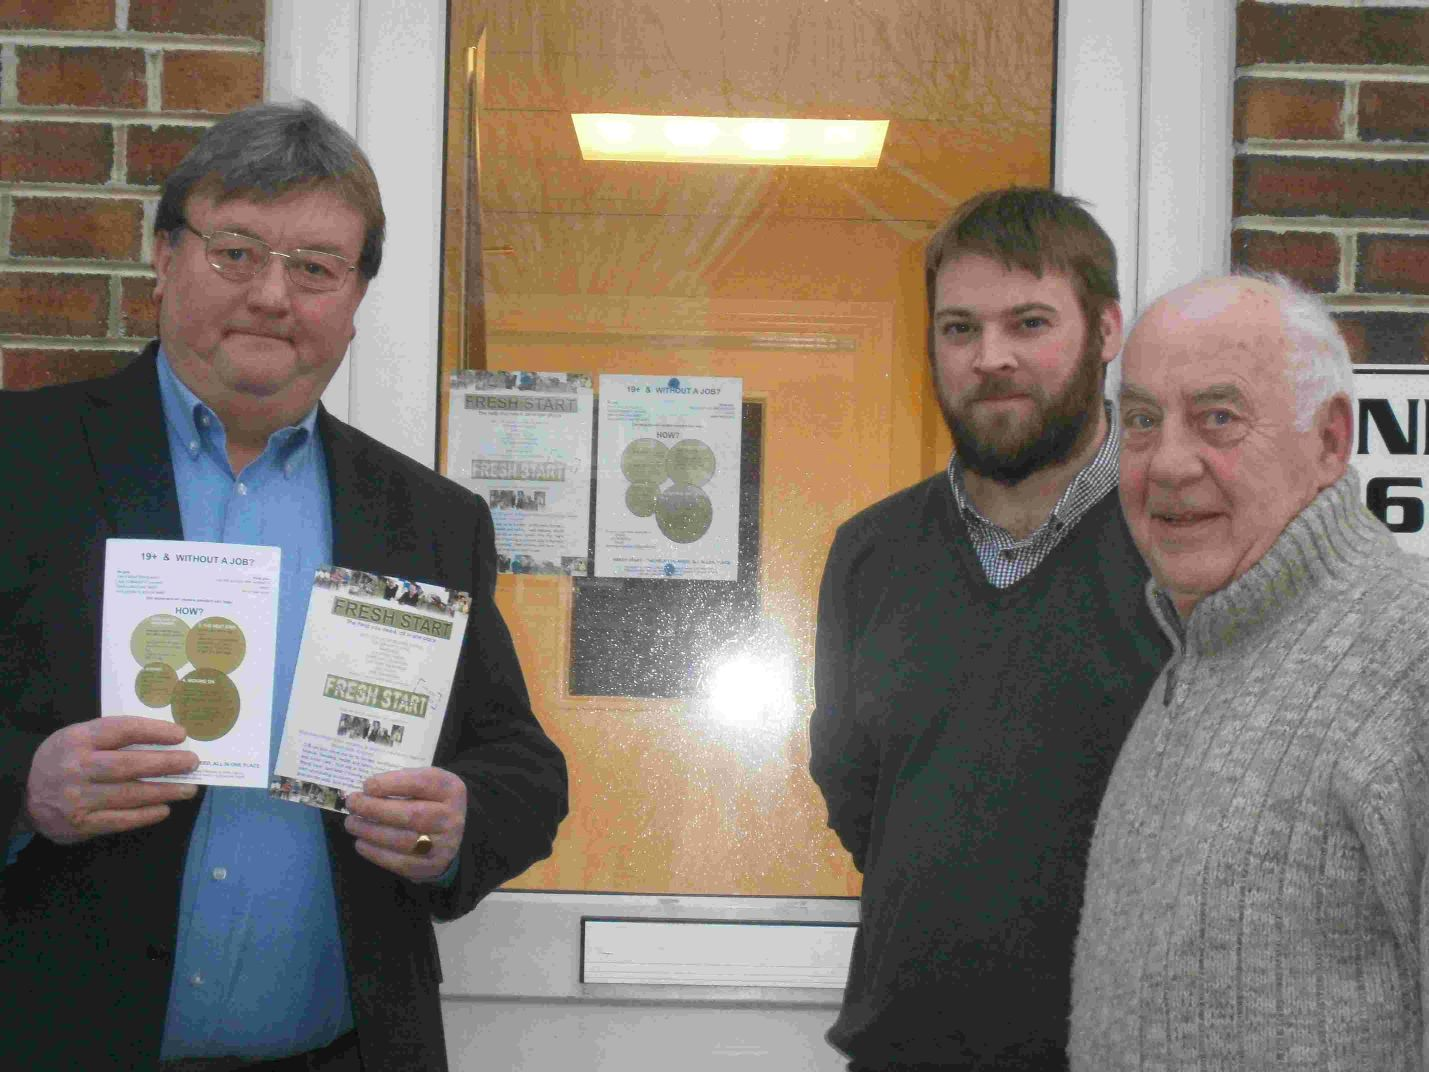 MENTORS: Fresh Start Tutors and mentors Paul Conde, Richard Smith and Alan Leach for Skills Training Bridport